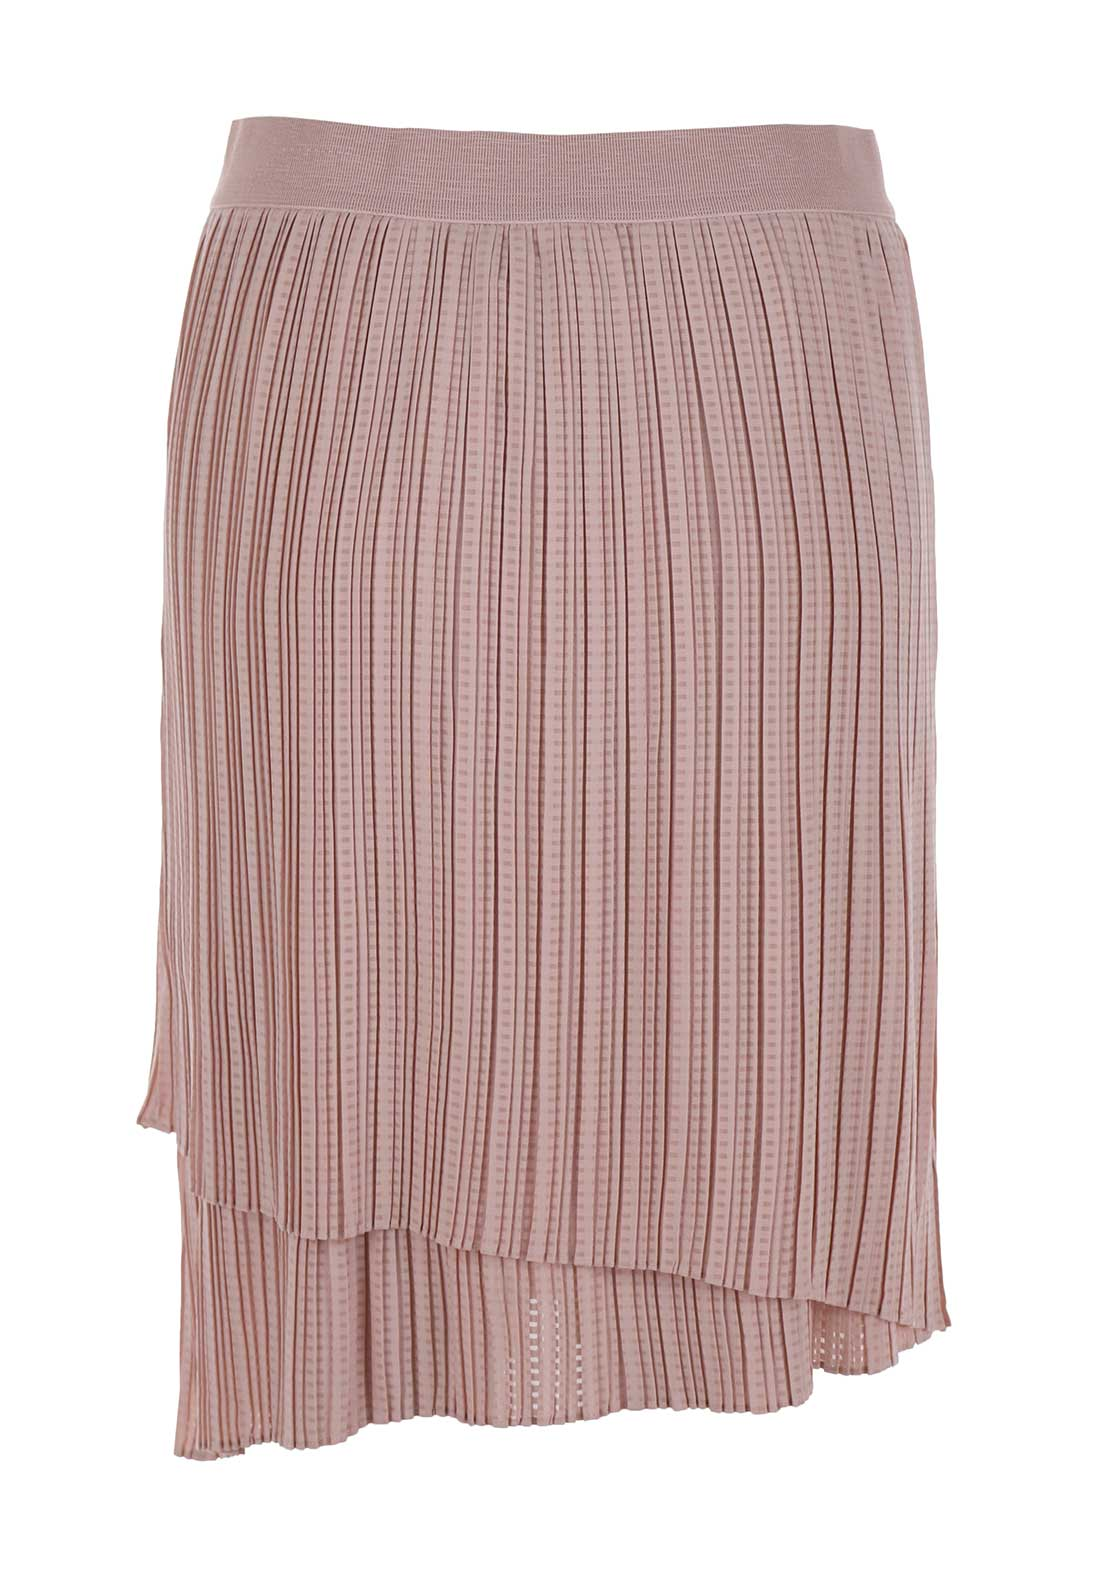 Inwear Pleated Flared Skirt, Pink